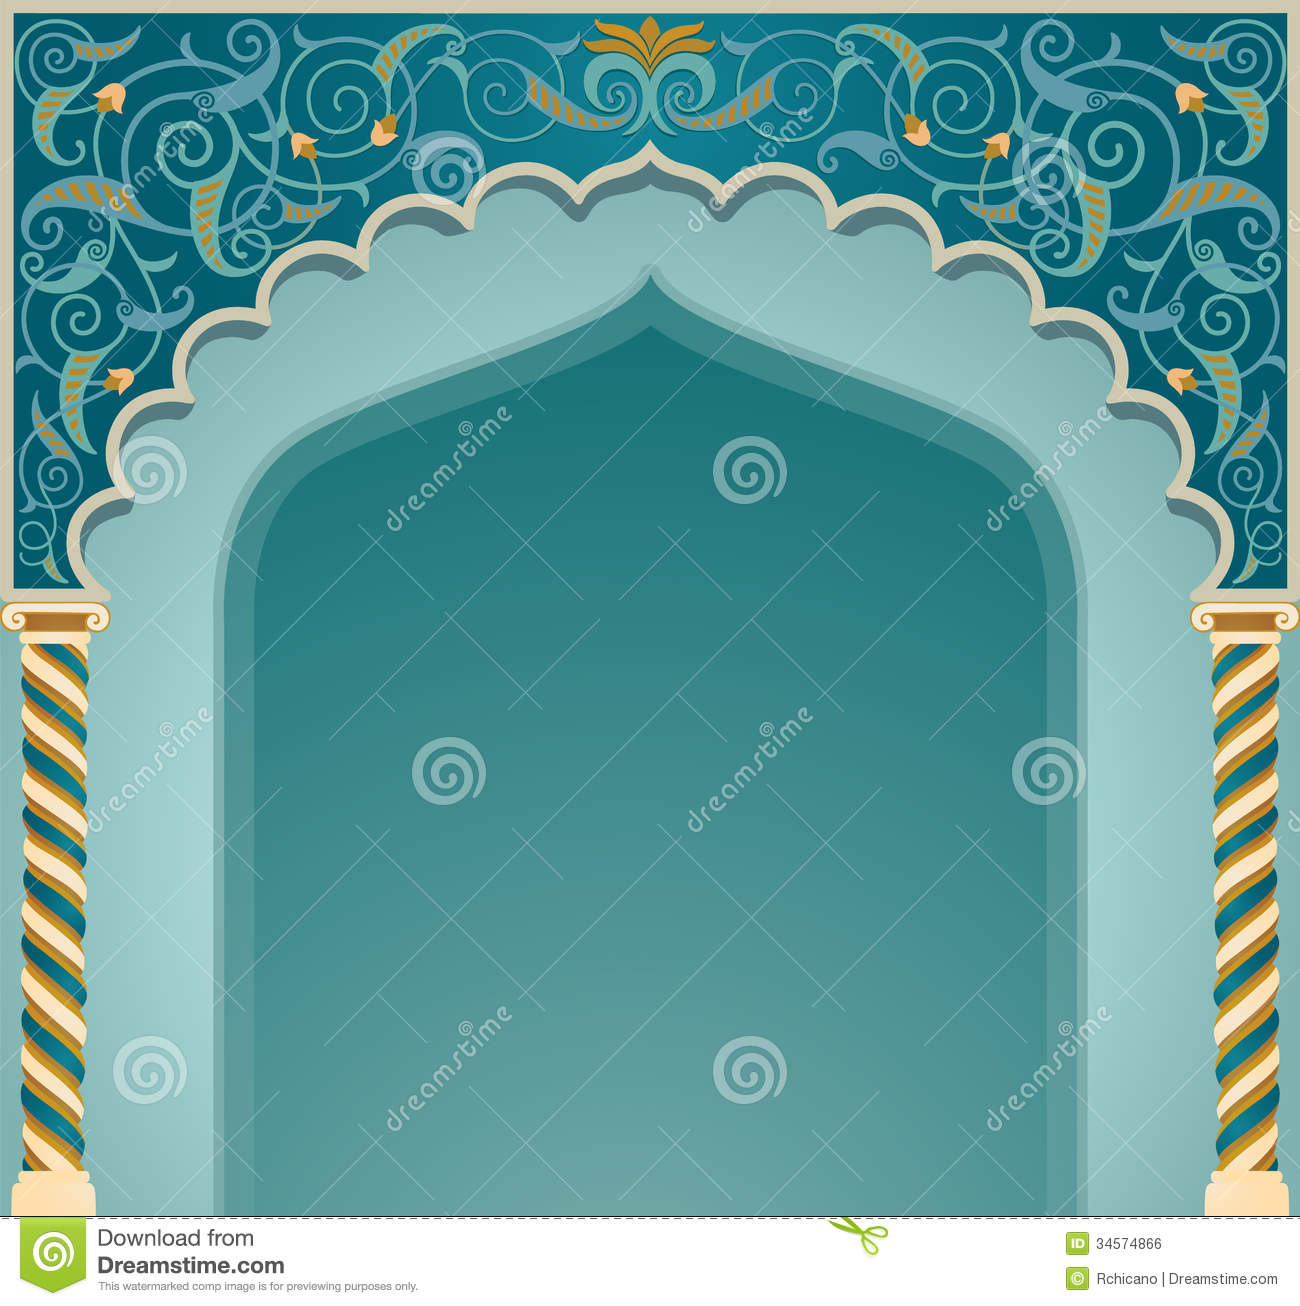 Islamic arch design stock vector illustration of background islamic arch design thecheapjerseys Image collections